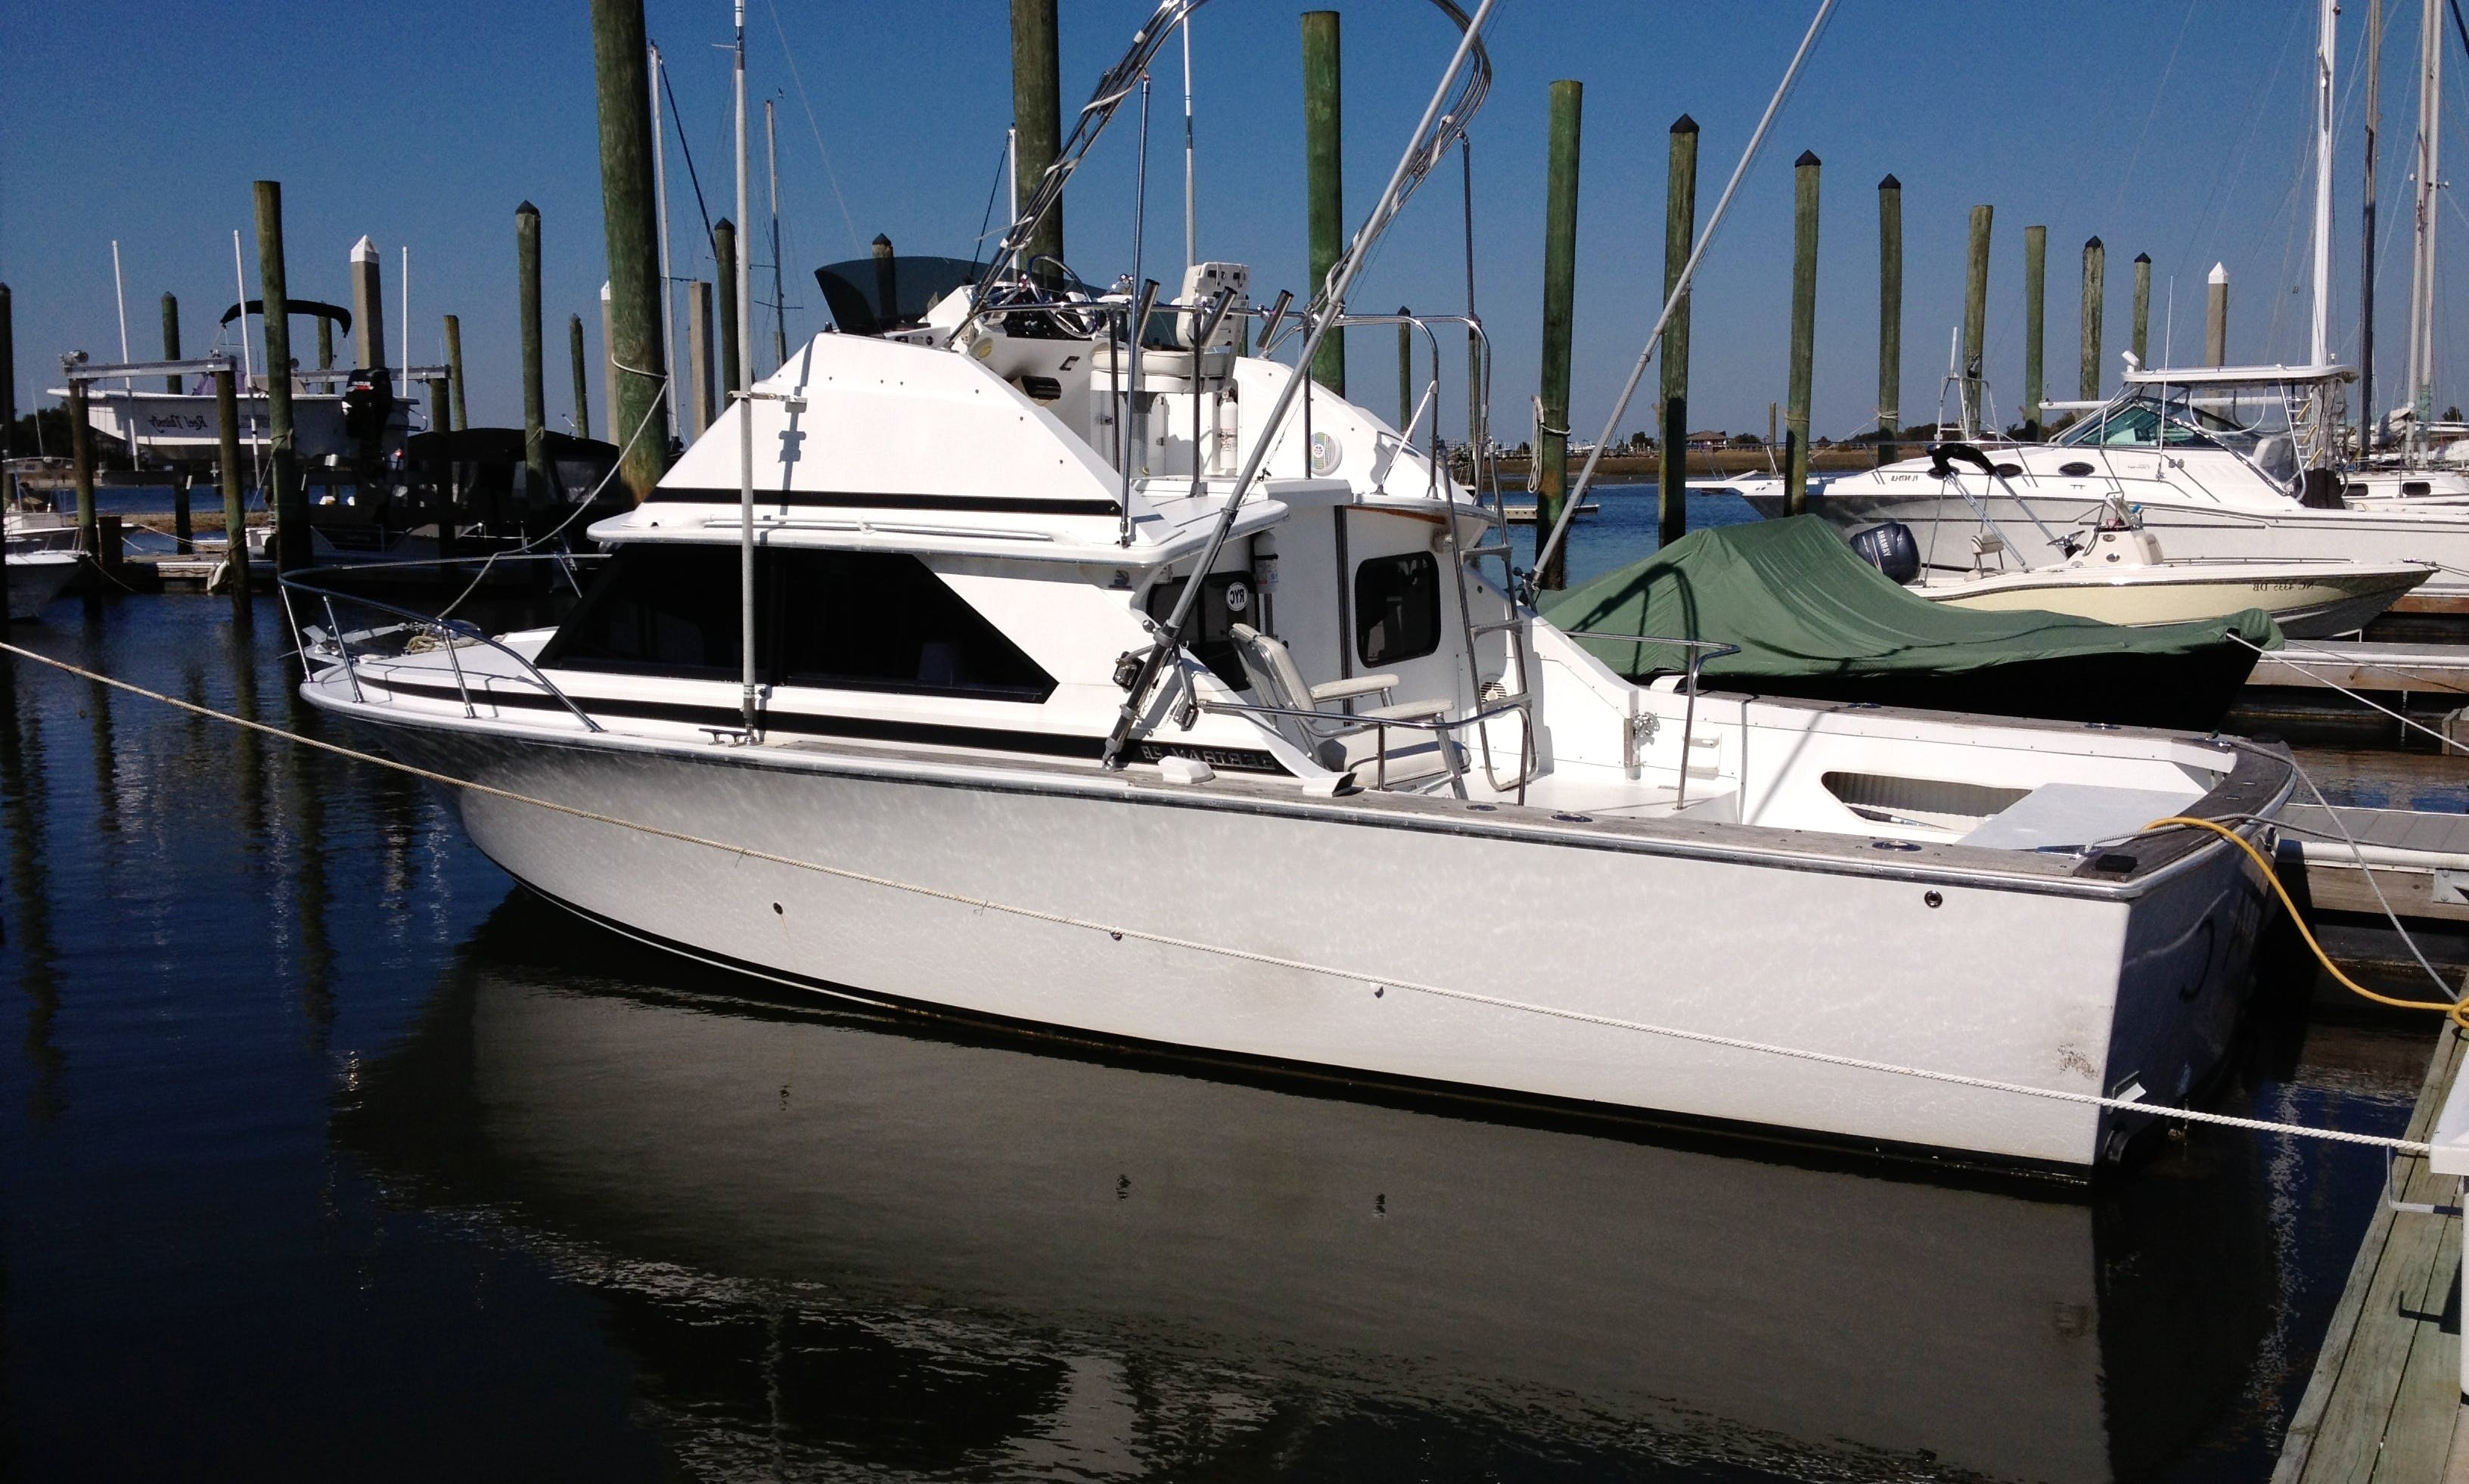 Inshore and Nearshore Fishing Charter in Isle of Palms, South Carolina